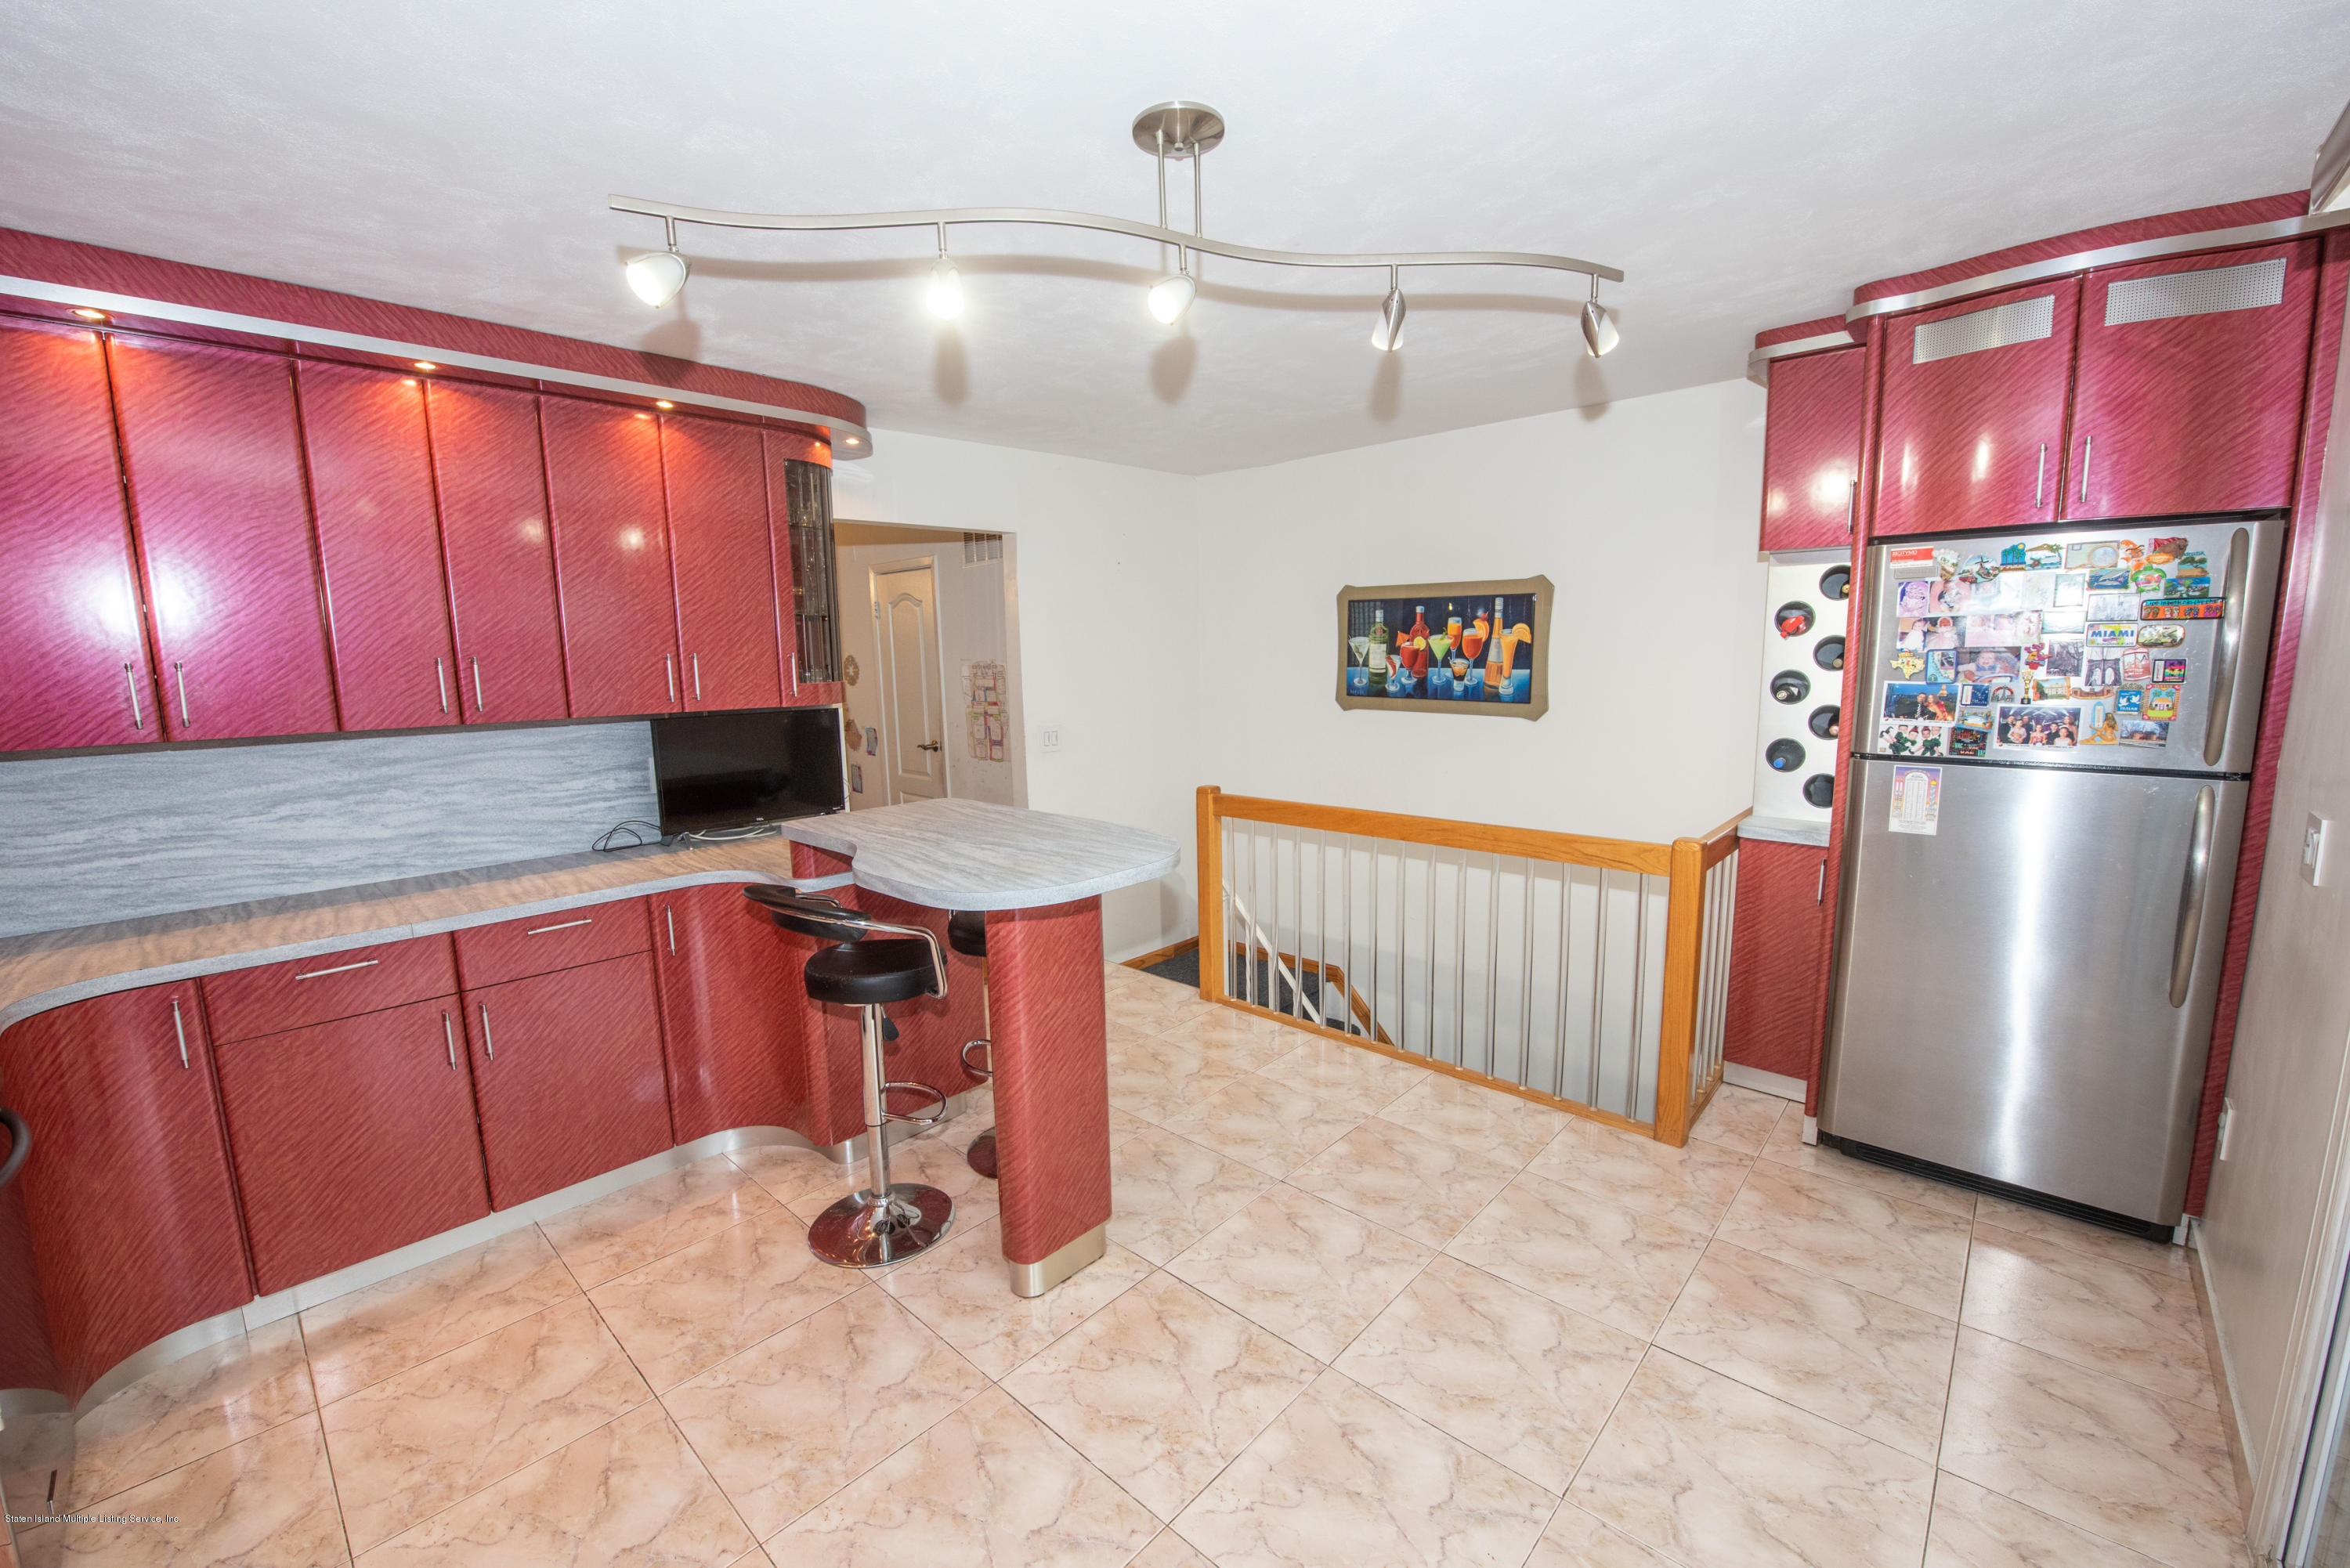 Single Family - Semi-Attached 76 Mcveigh Avenue  Staten Island, NY 10314, MLS-1133370-12